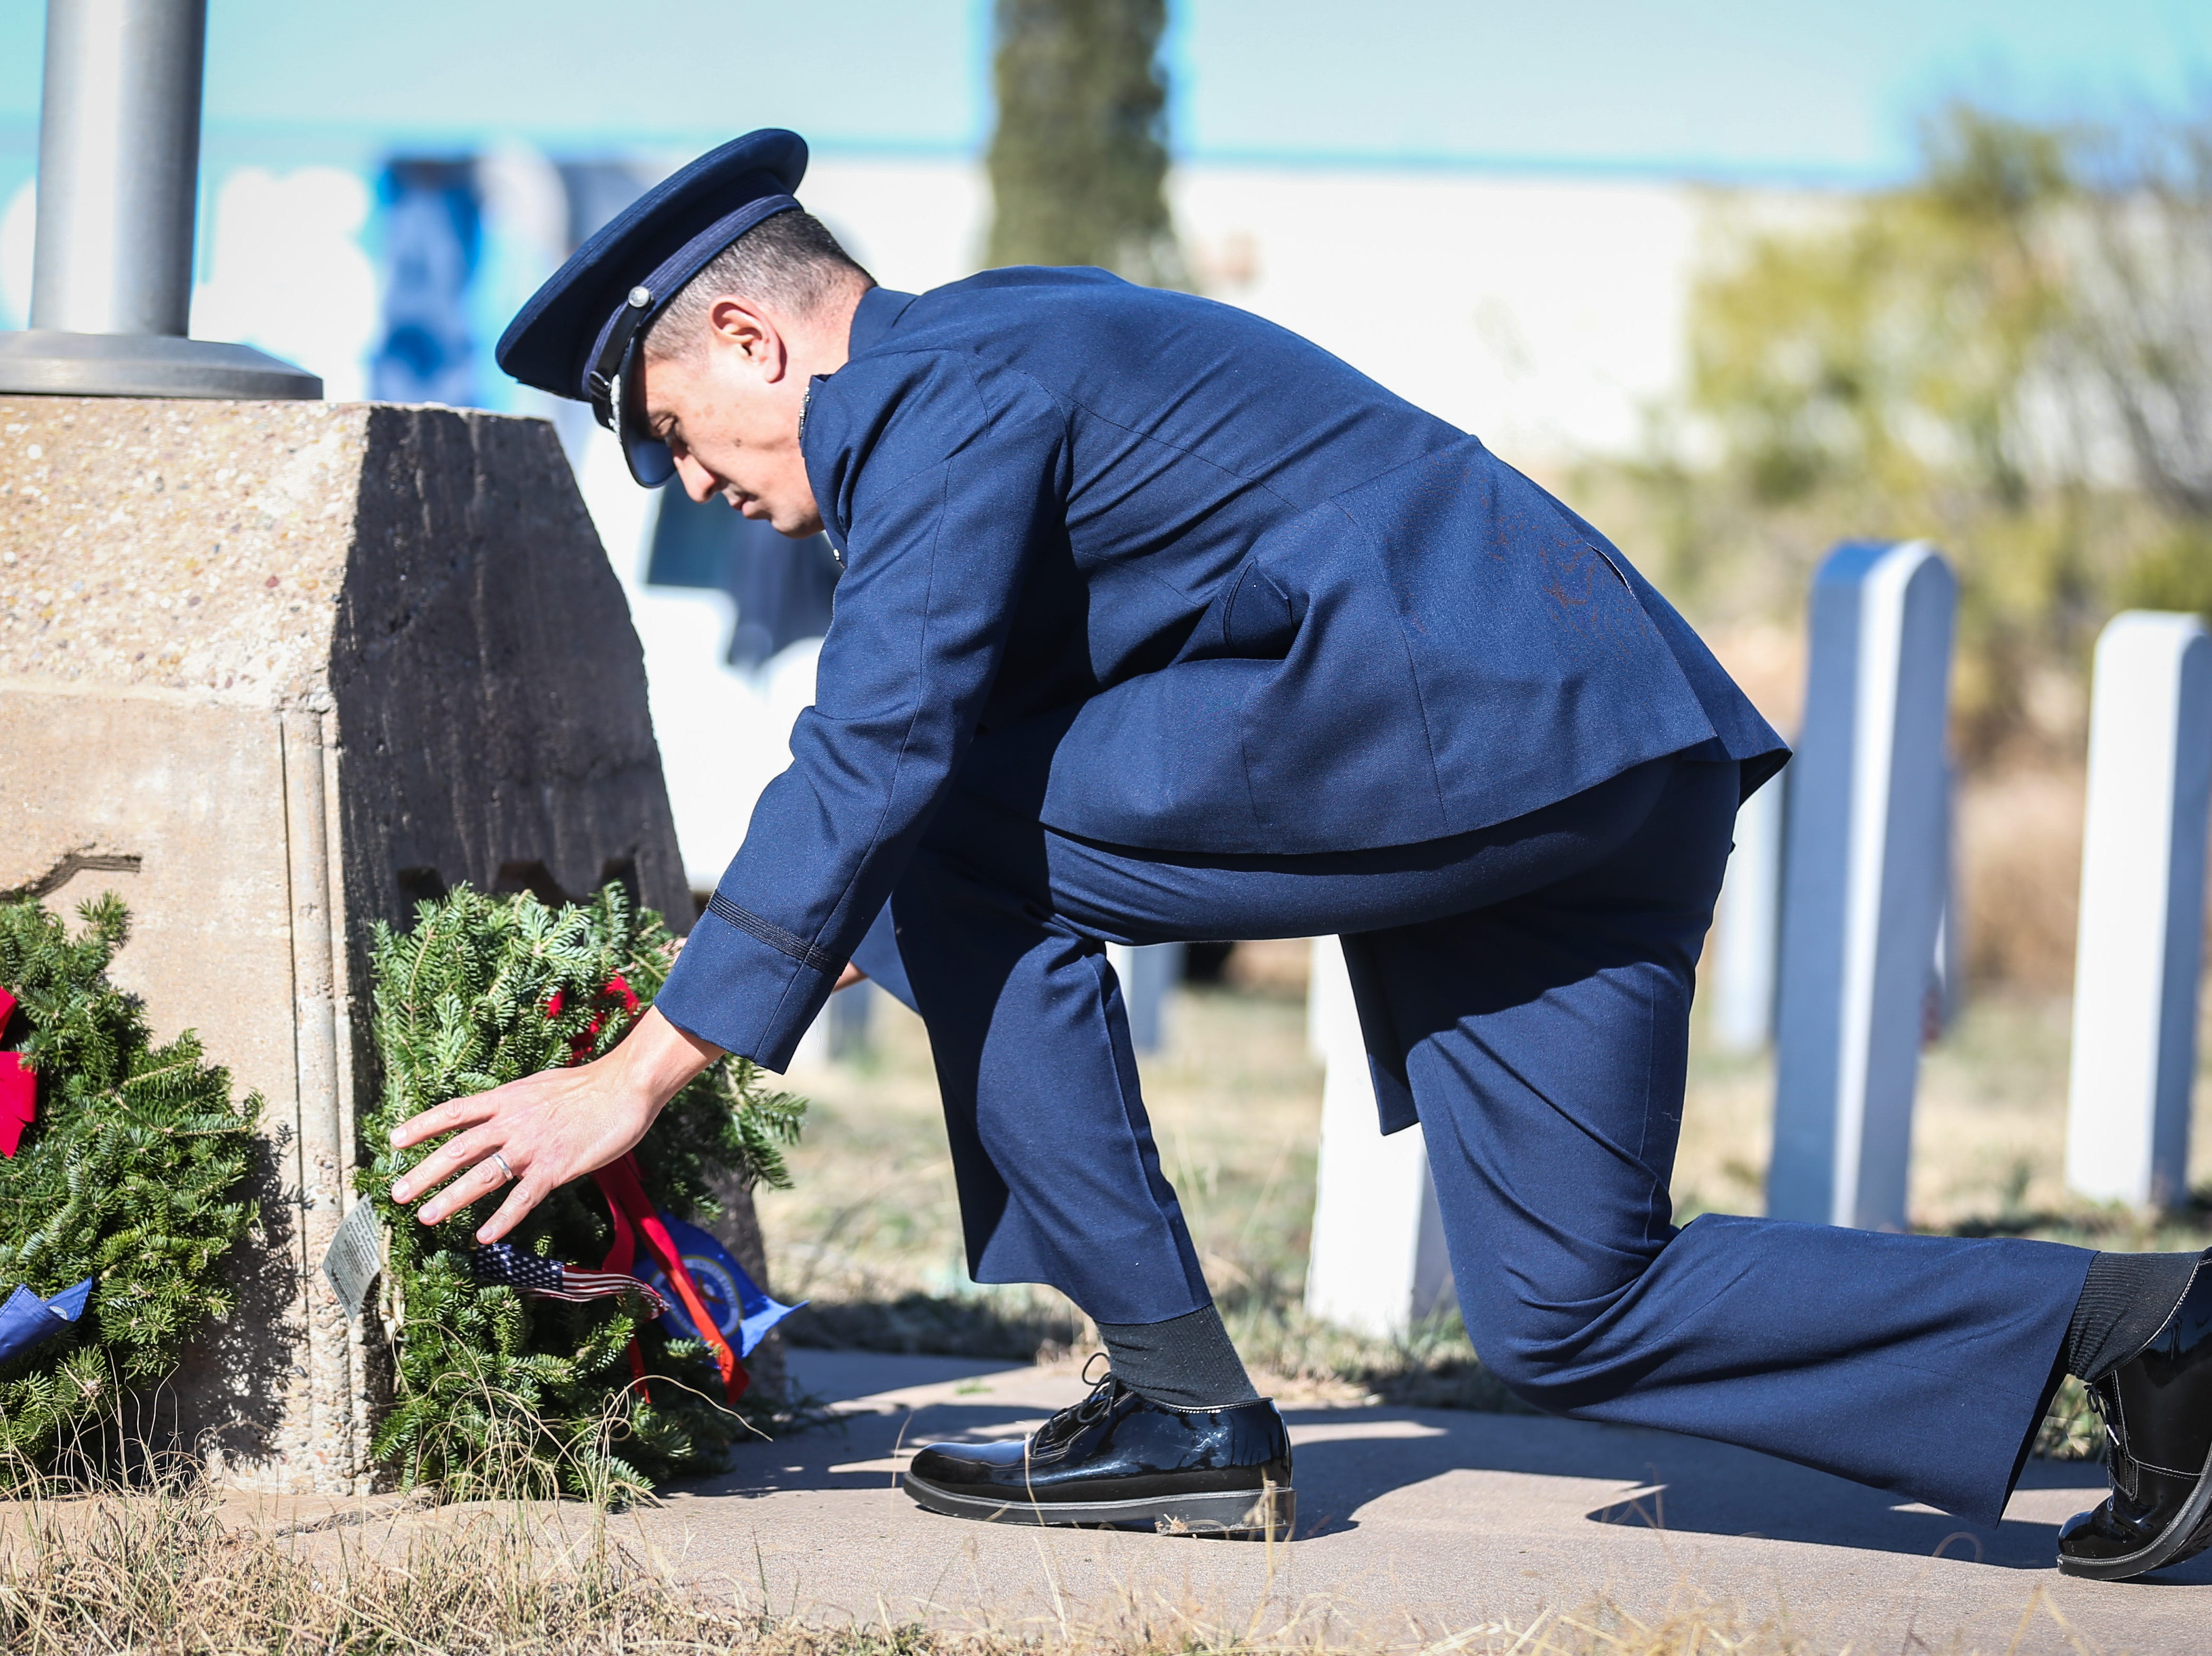 Col. Ricky Mills, Commander of the 17th Training Wing at Goodfellow Air Force Base, lays a ceremonial wreath during the Wreaths Across America Saturday, Dec. 15, 2018, at Belvedere Memorial Park.